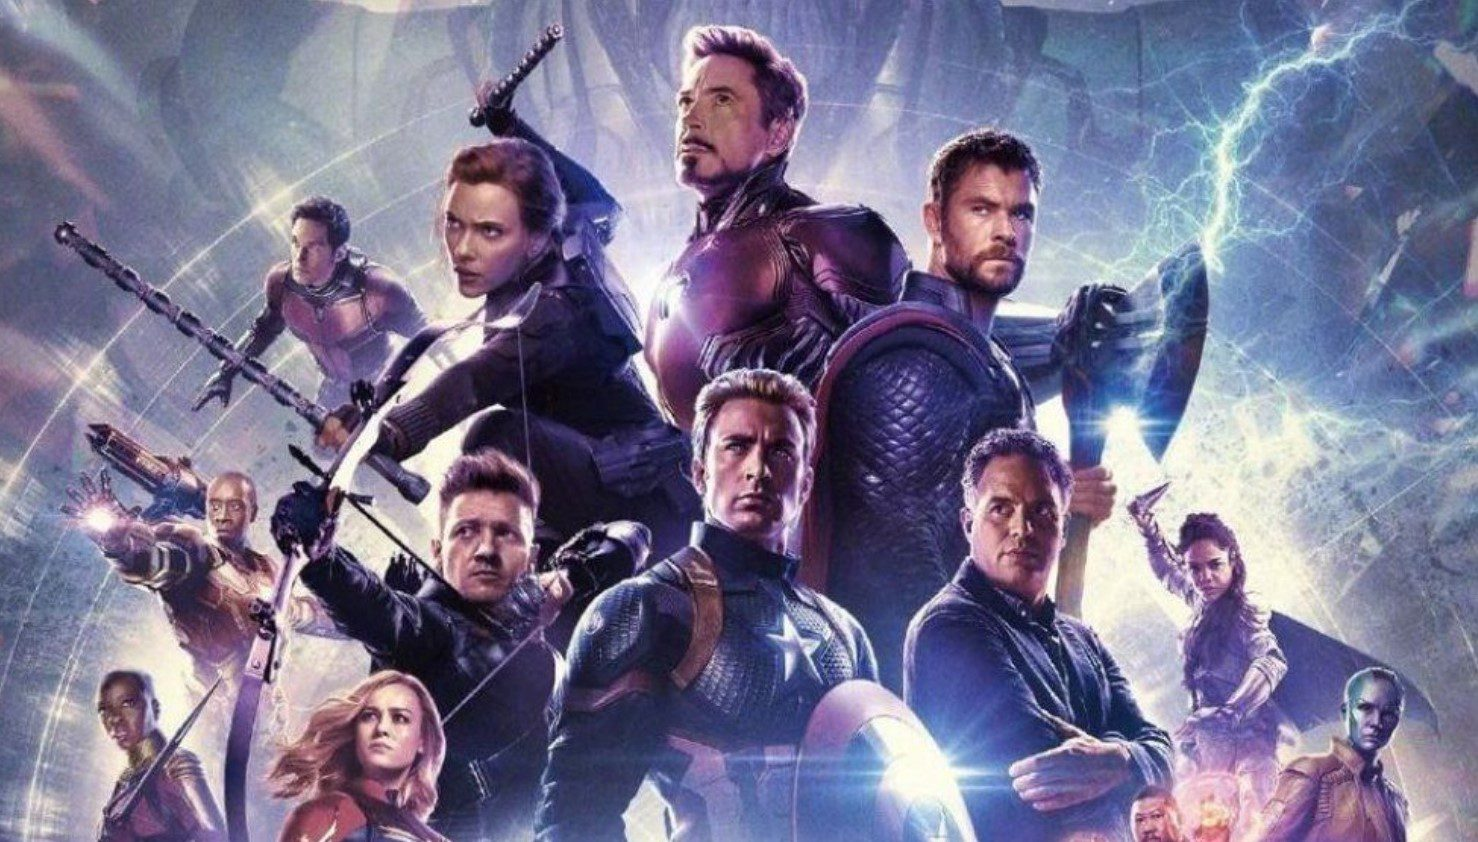 Marvel boss Kevin Feige says more Avengers films will be made at some point, just not in Phase 4